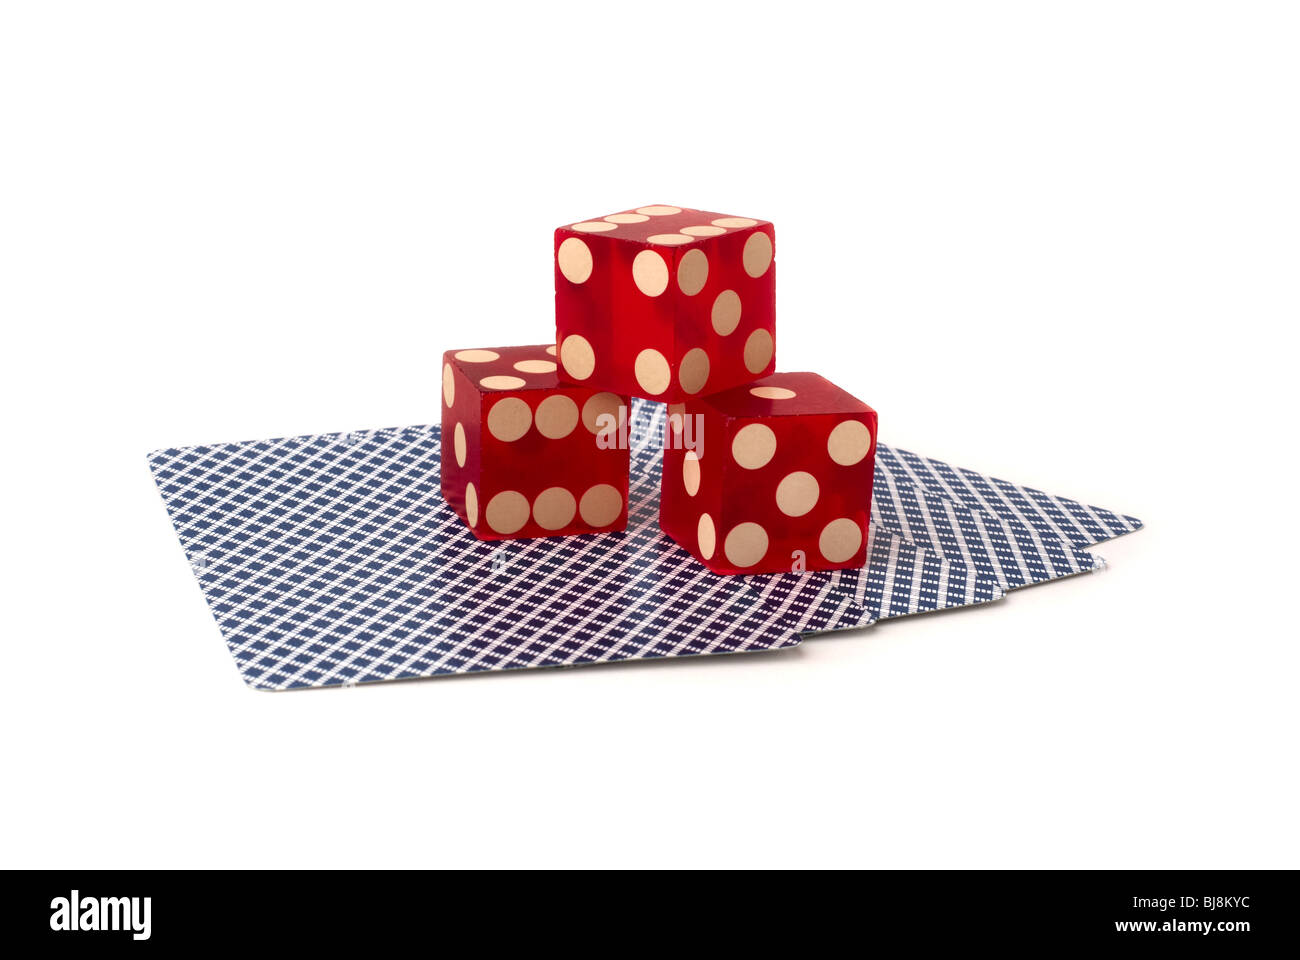 three red dice on five upside down playing cards with blue pattern, shot in studio on white background - Stock Image